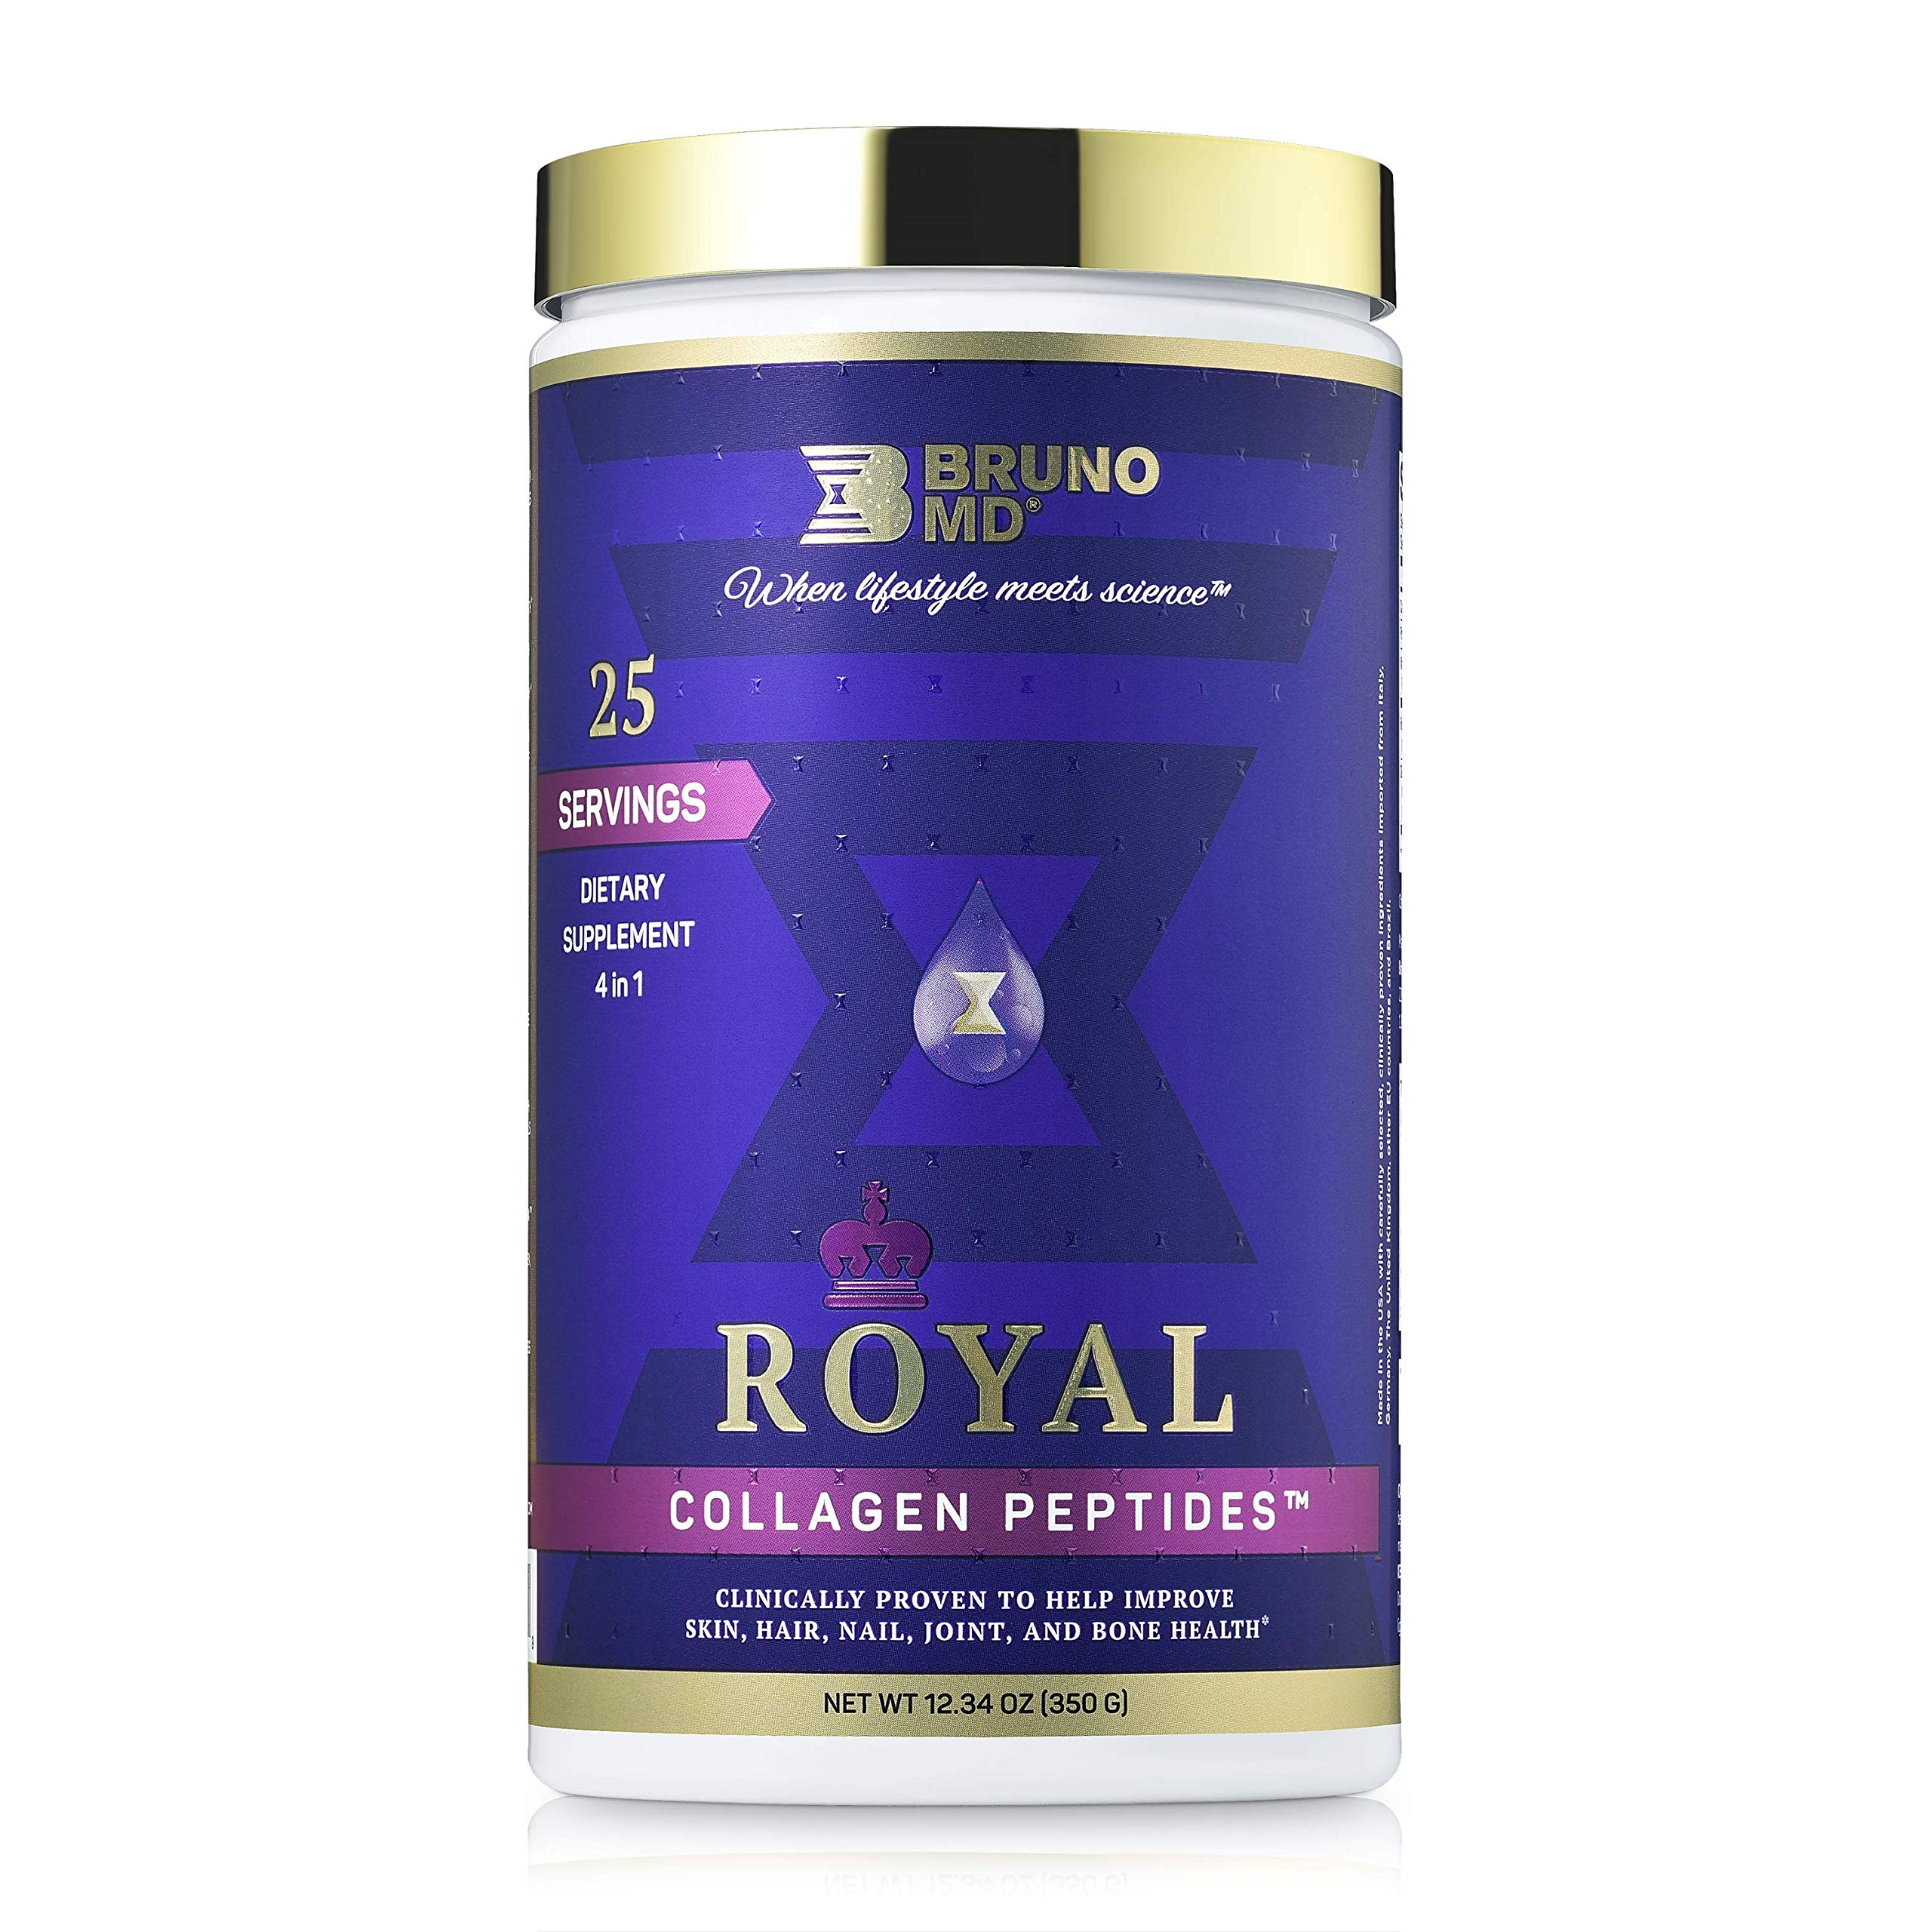 Bruno MD Royal Collagen Peptides, Clinically proven, Dietary Supplement, Improves Skin, European Sourced, Improves the Look of Hair and Nails, Blended with Vitamin C, Natural Bone and Joint Supplement